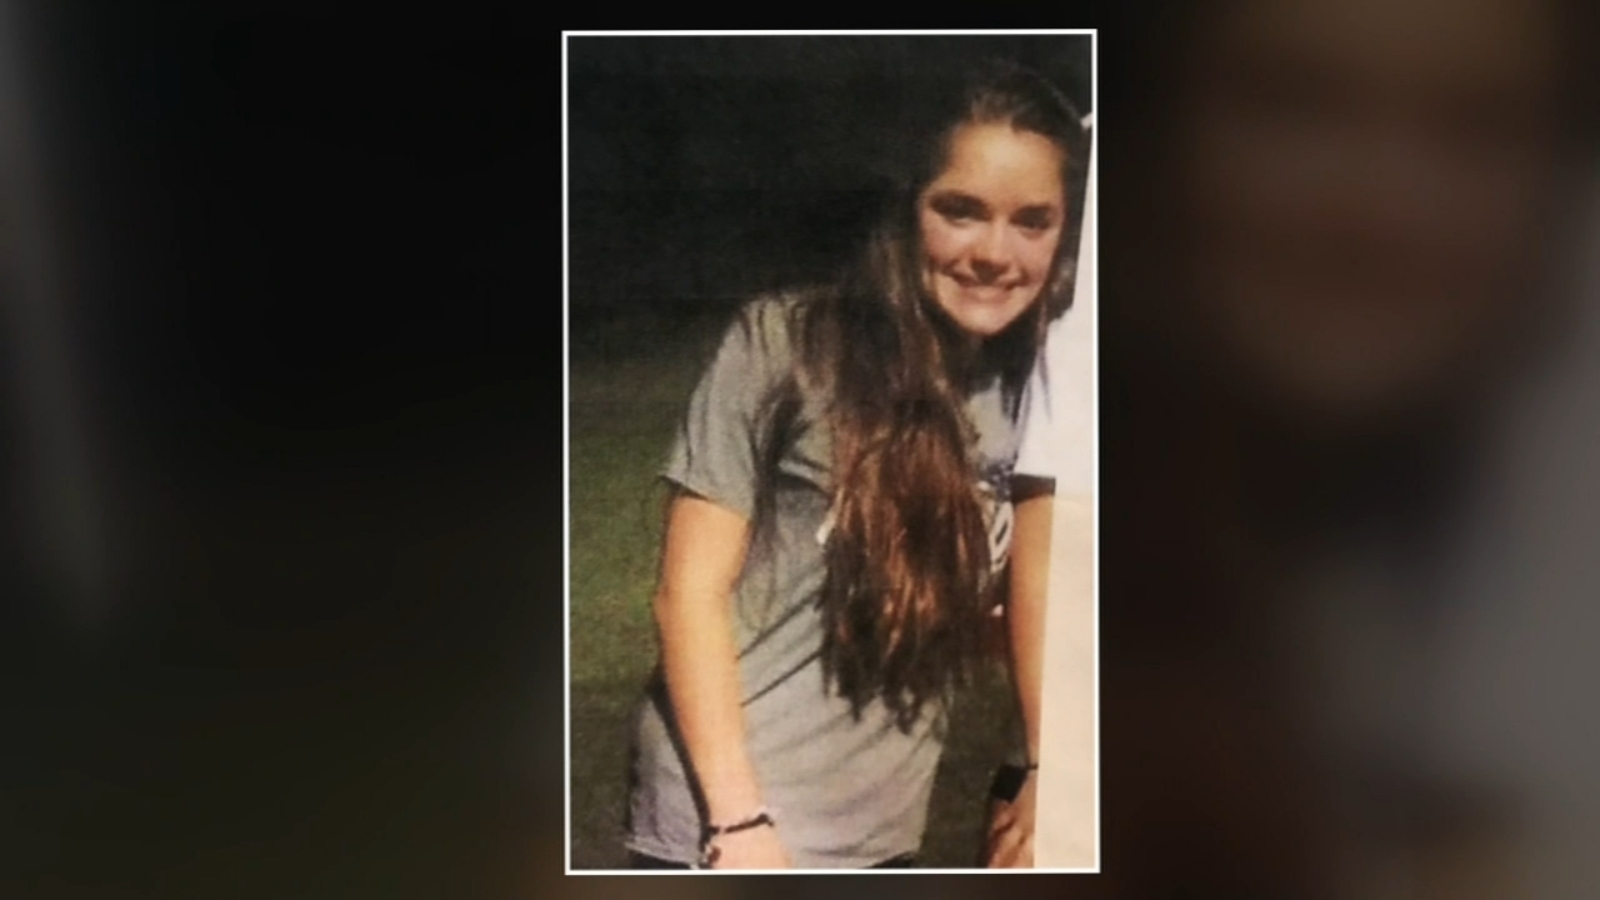 Missing Magnolia teen found safe in Dobbin, Texas